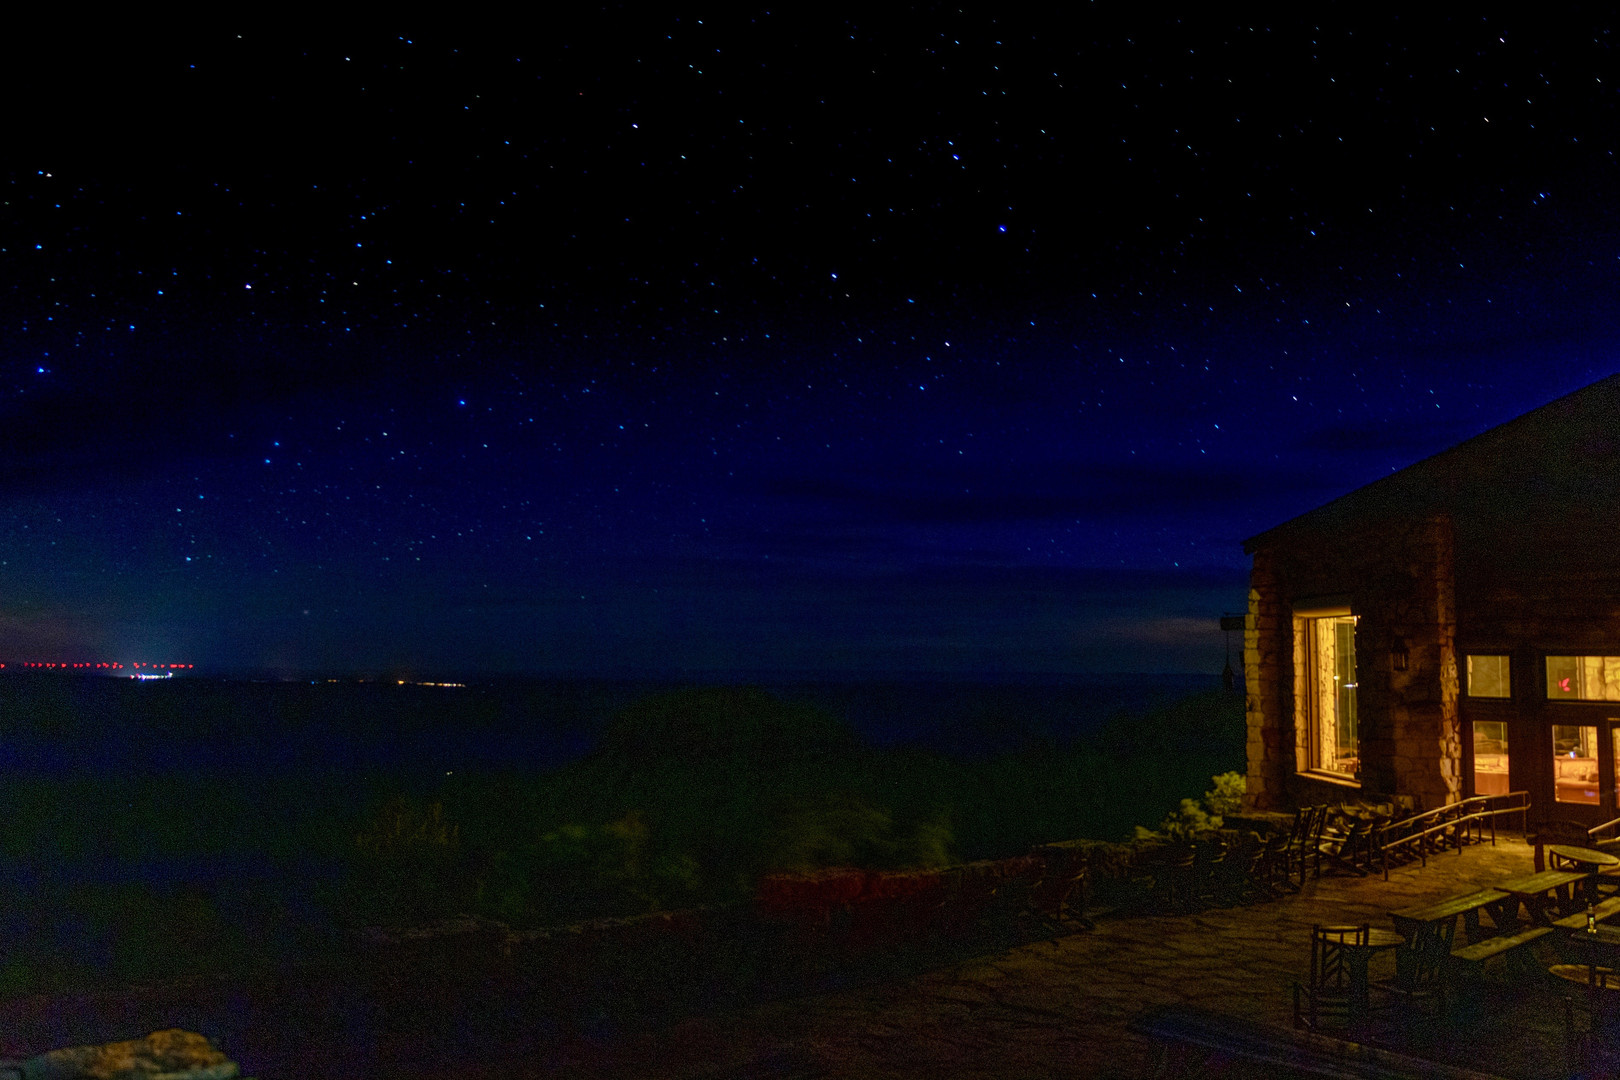 A night view of the lodge at the North Rim.